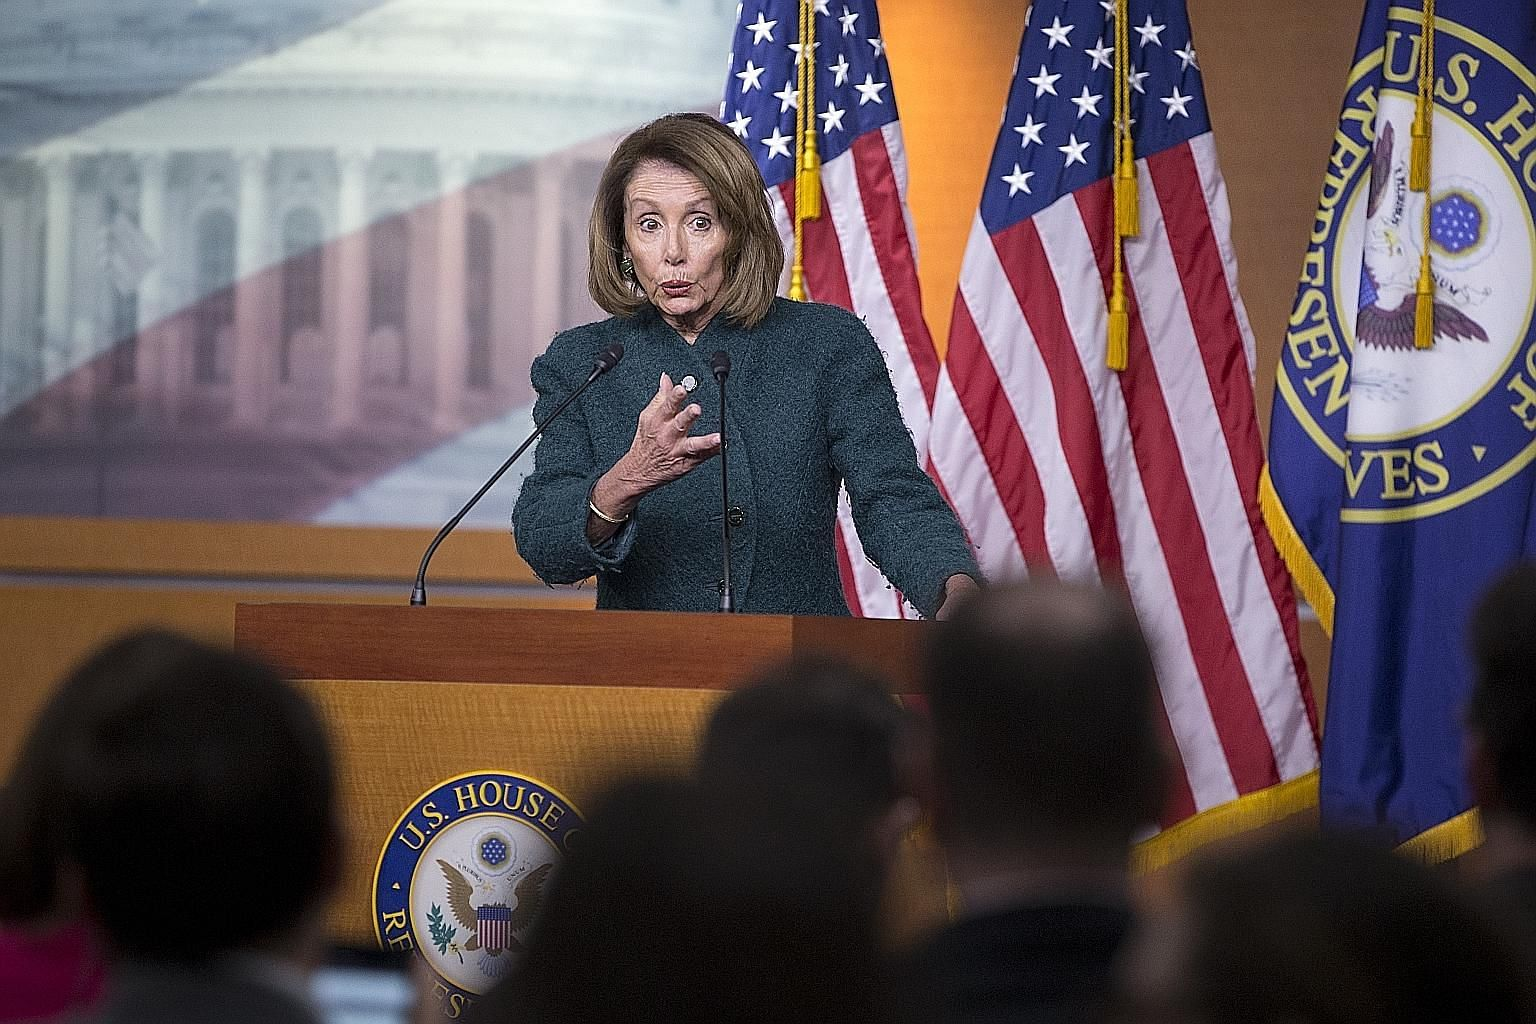 Democratic House Speaker Nancy Pelosi holding a news conference in Washington this month. The US' partial government shutdown has extended into a fifth week and remains at an impasse. Mrs Pelosi plans to have the House vote on its own border security